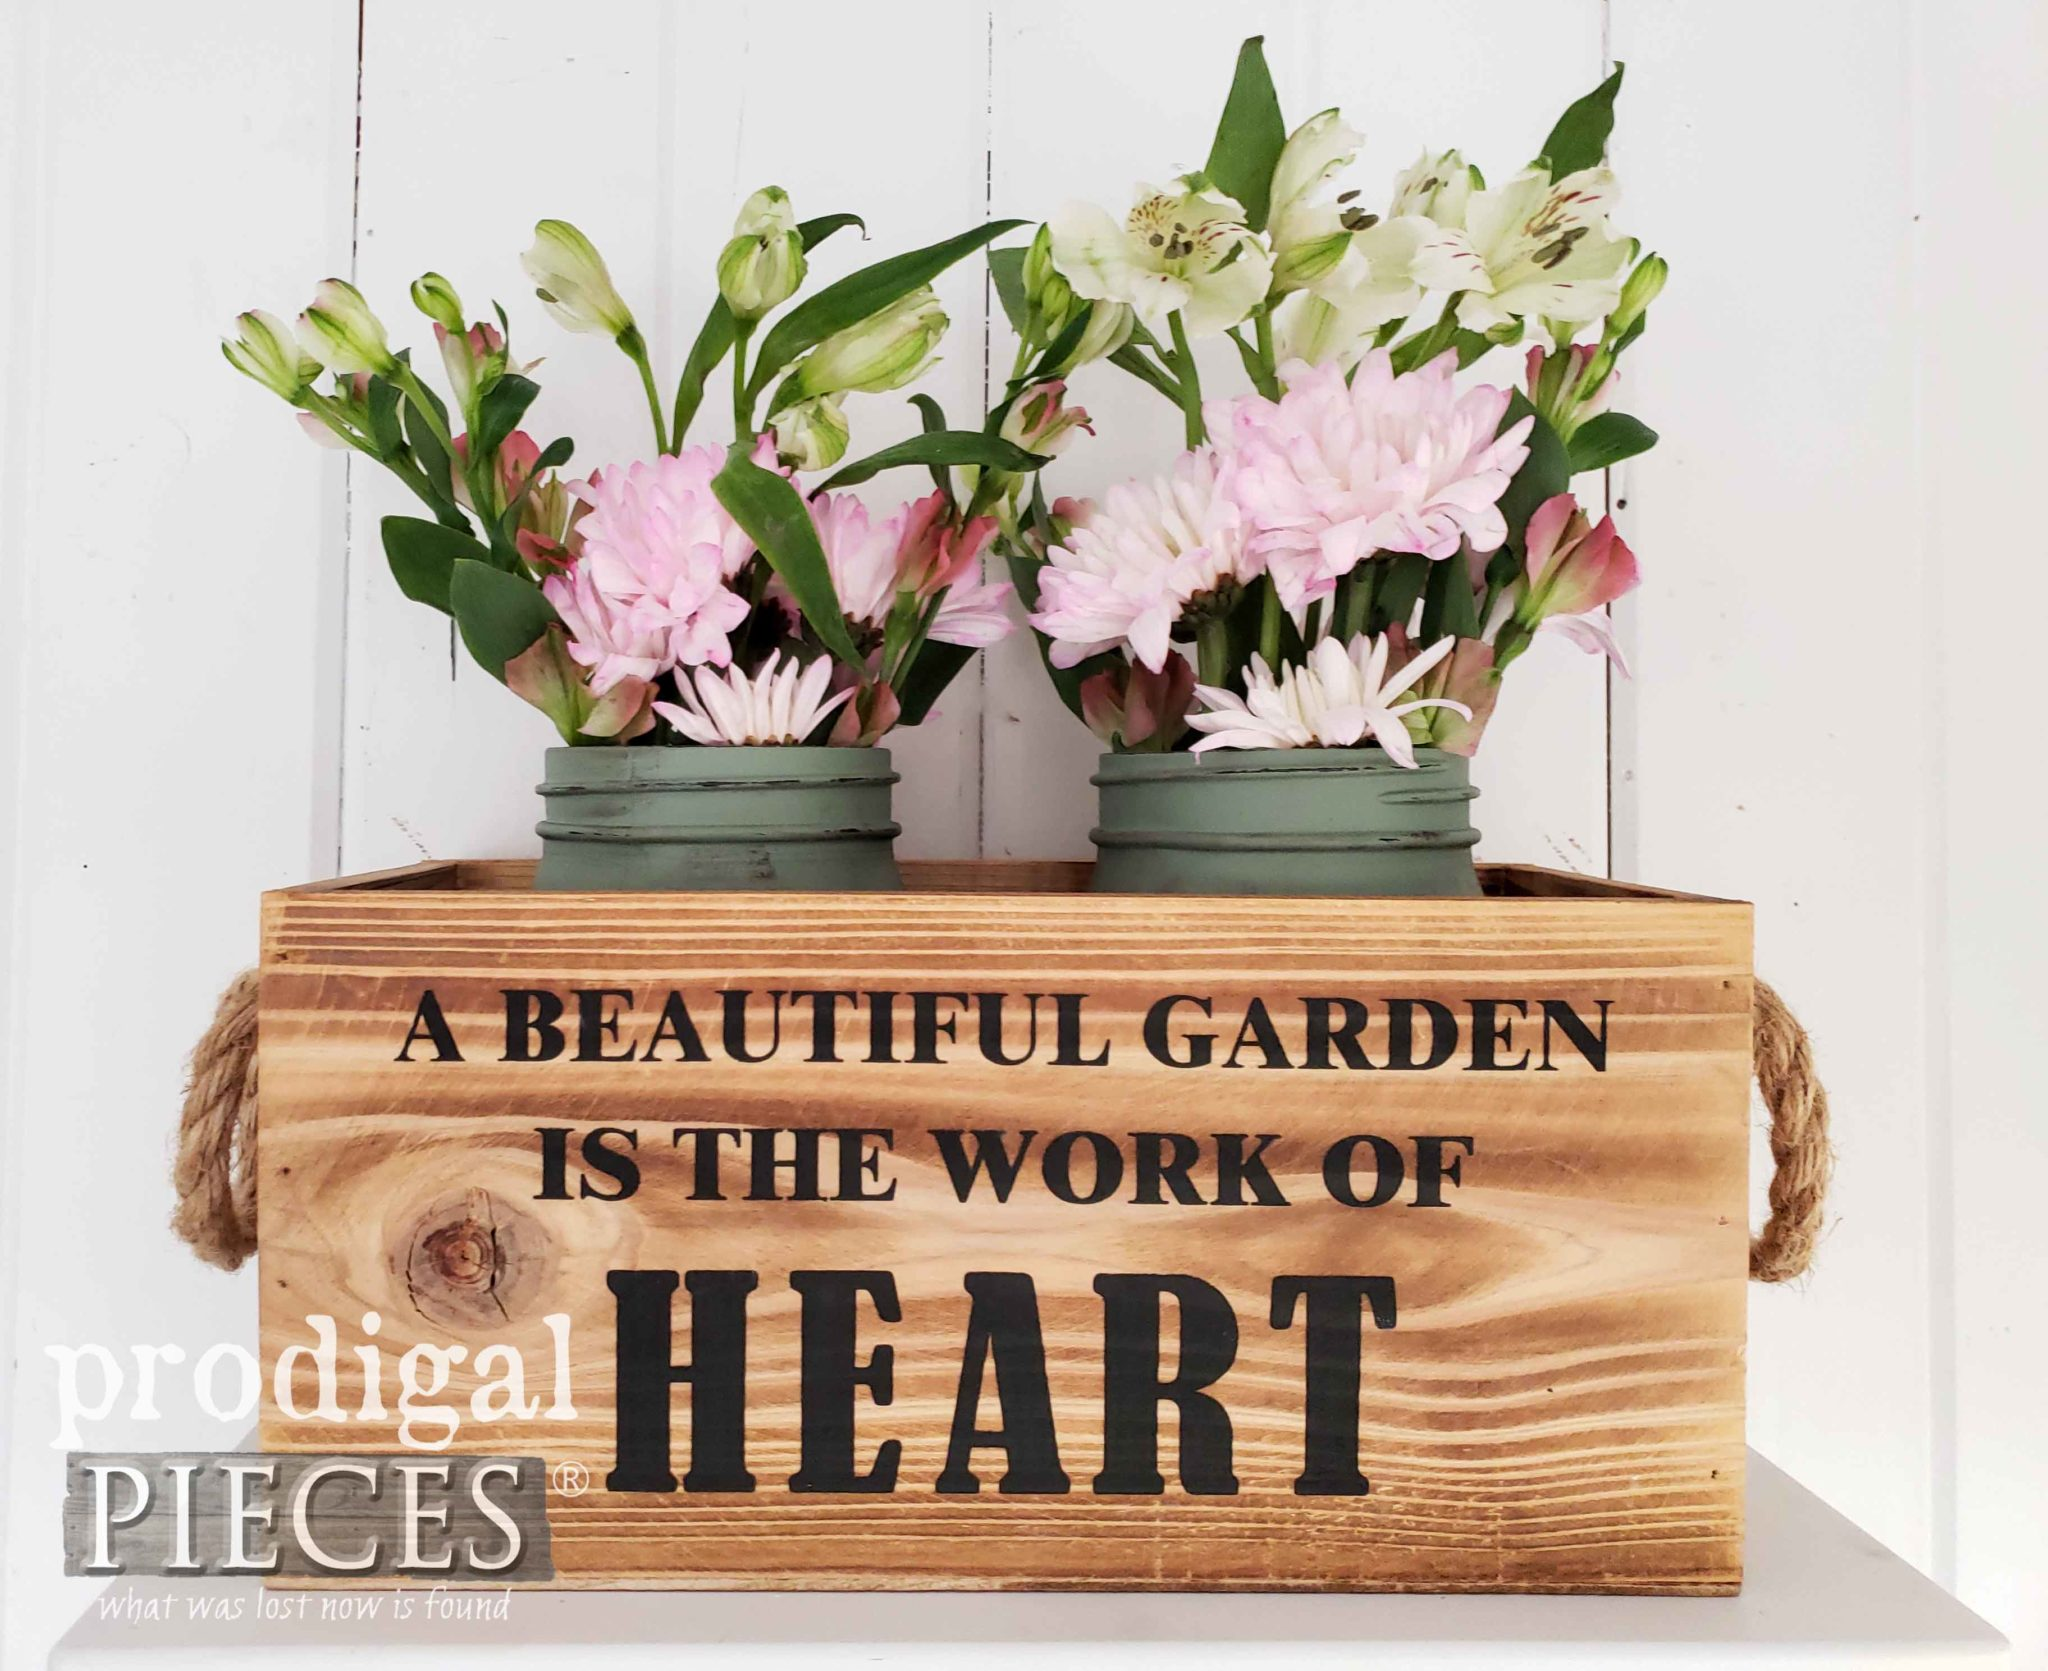 Vintage Style Crate Filled with Painted Ball Canning Jars and Fresh Blooms by Larissa of Prodigal Pieces | prodigalpieces.com #prodigalpieces #diy #farmhouse #home #garden #homedecor #homedecorideas